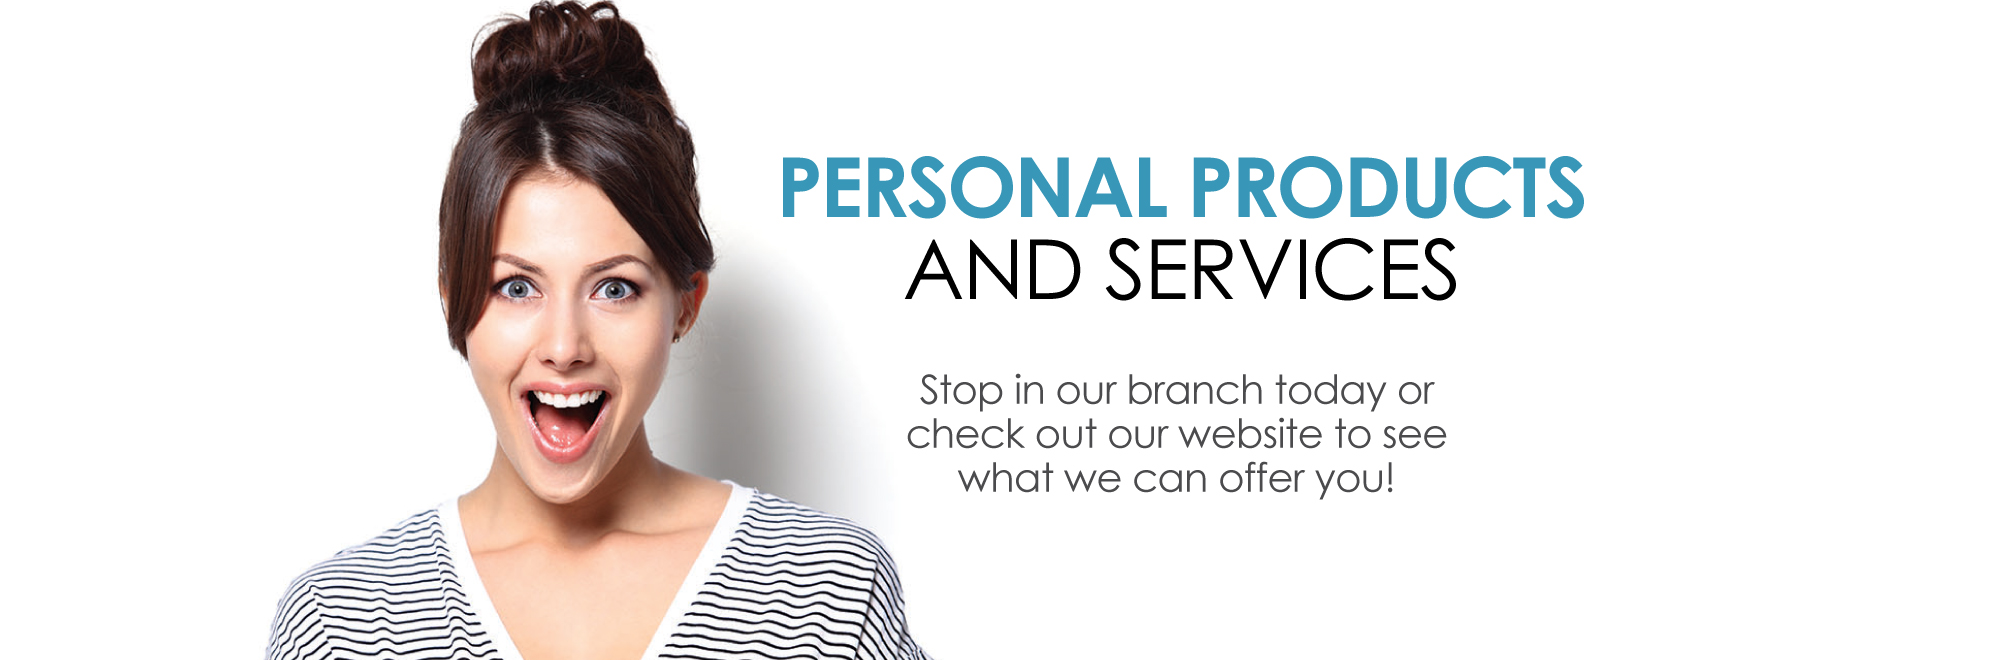 Personal Products and Services